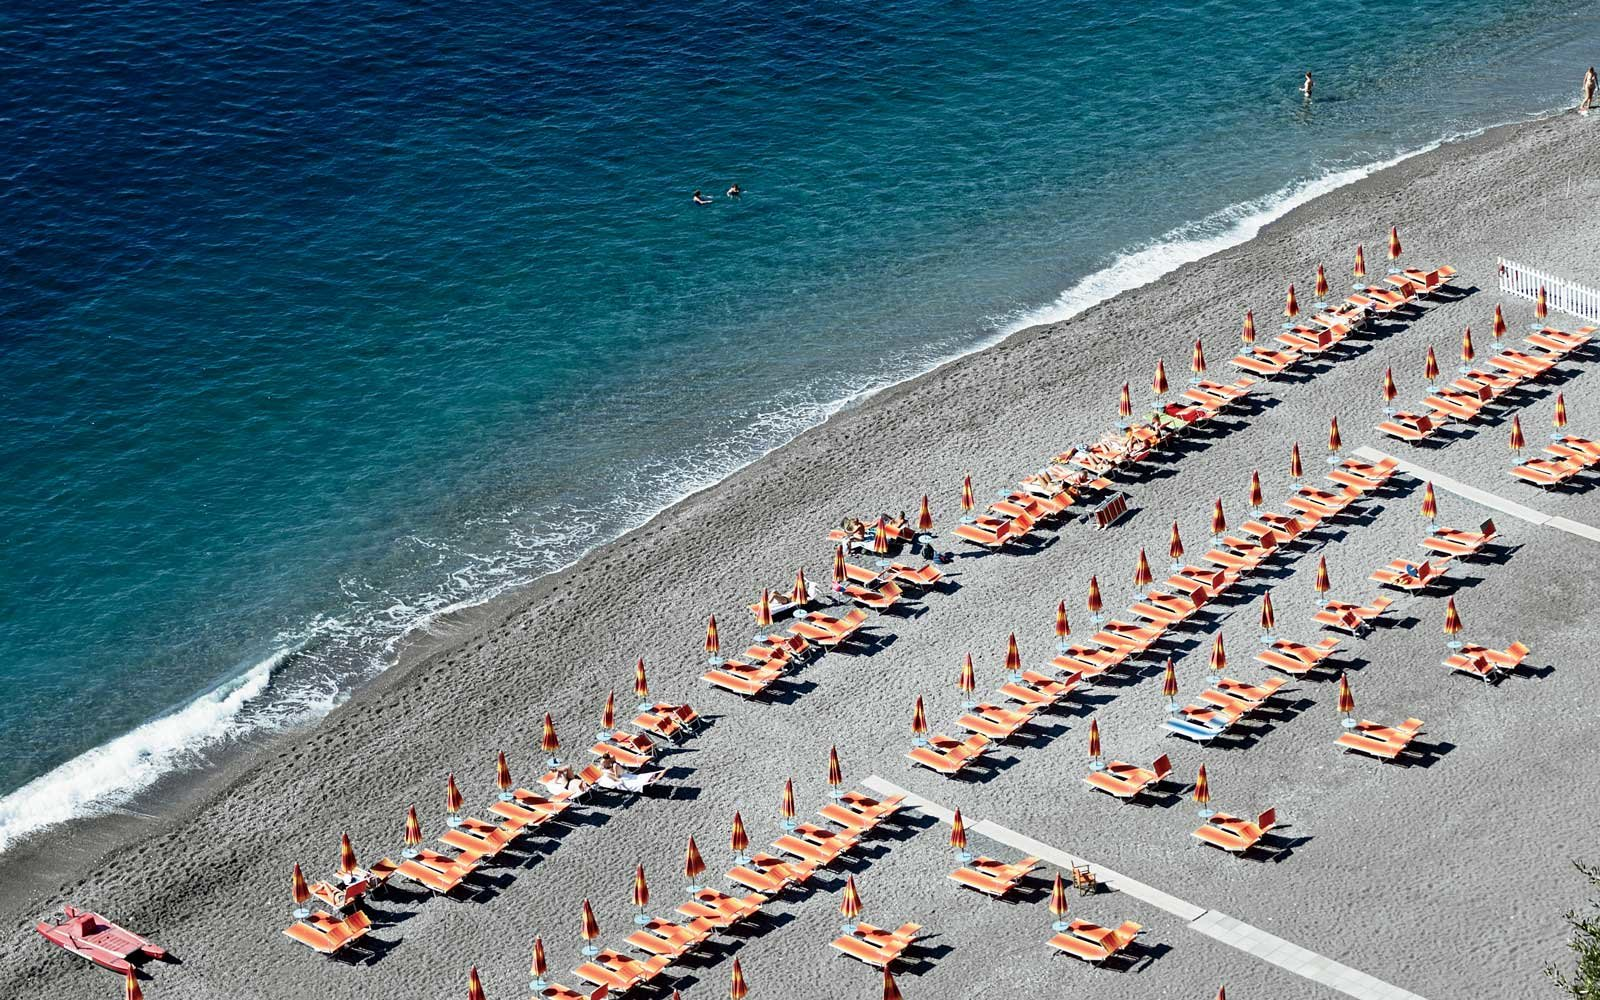 Marina Grande beach on Italy's Amalfi Coast